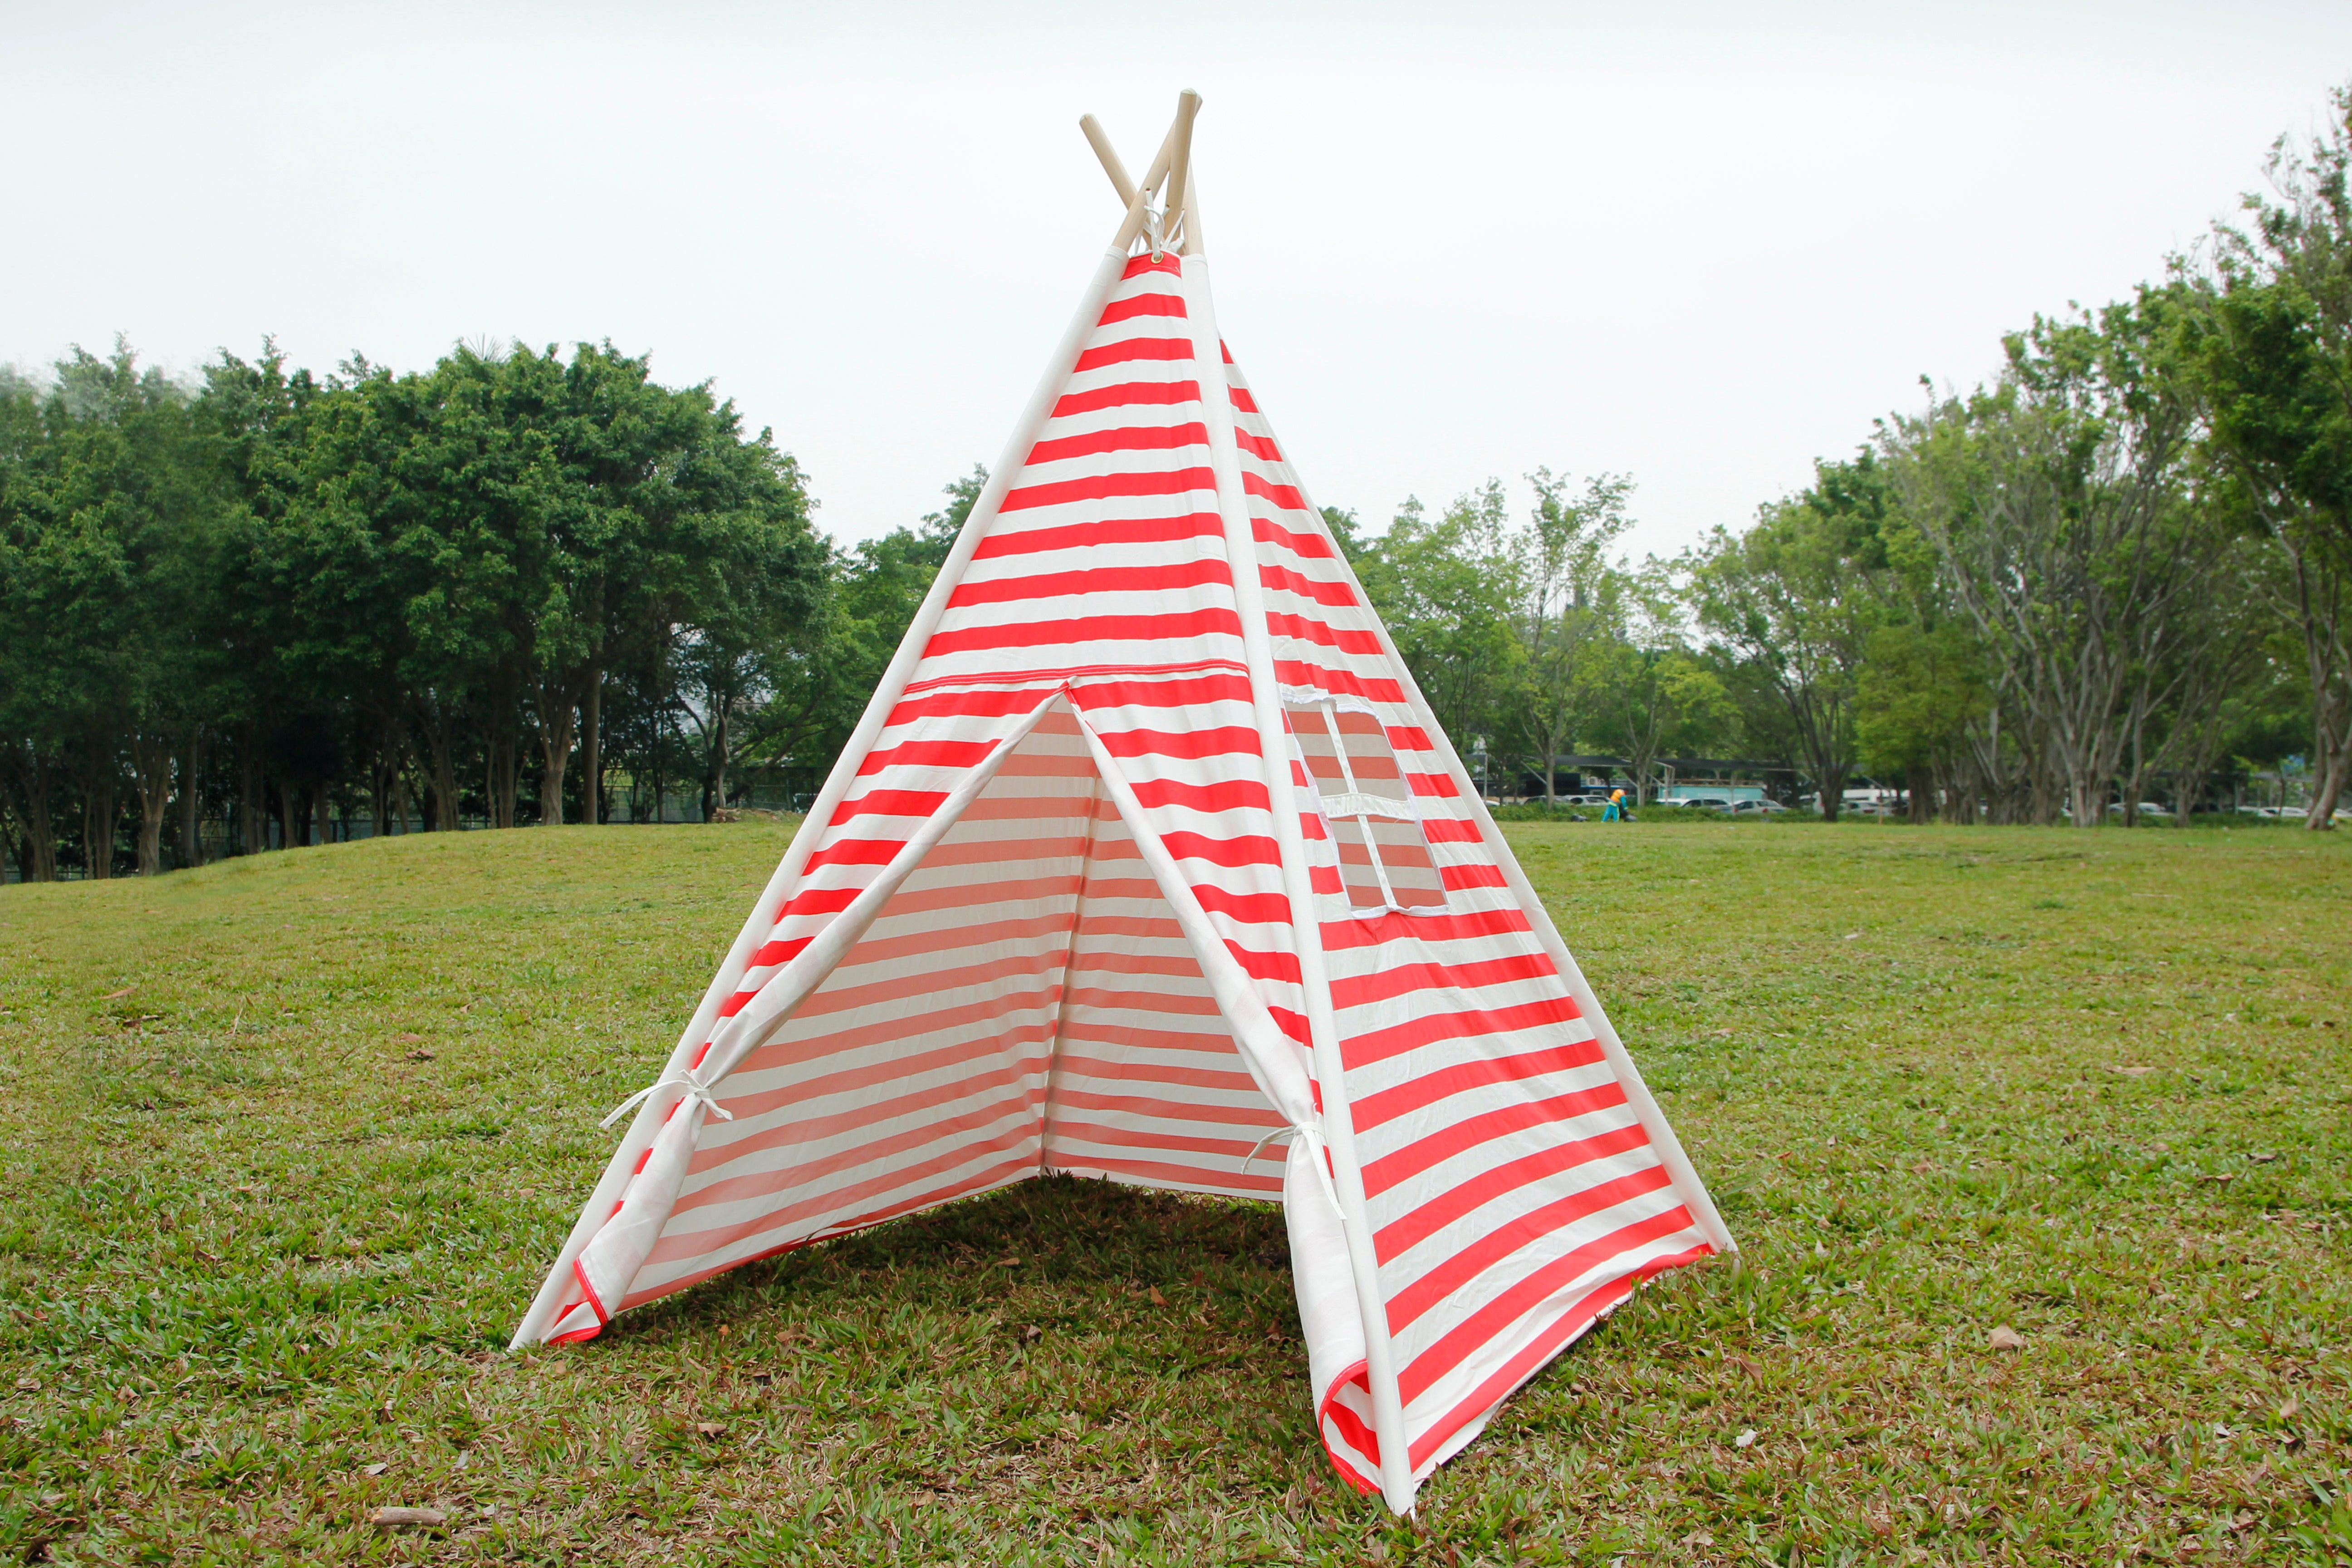 Canvas Teepee Tent for Kids Tipi Tent teepee tent 2 Child Indian TP